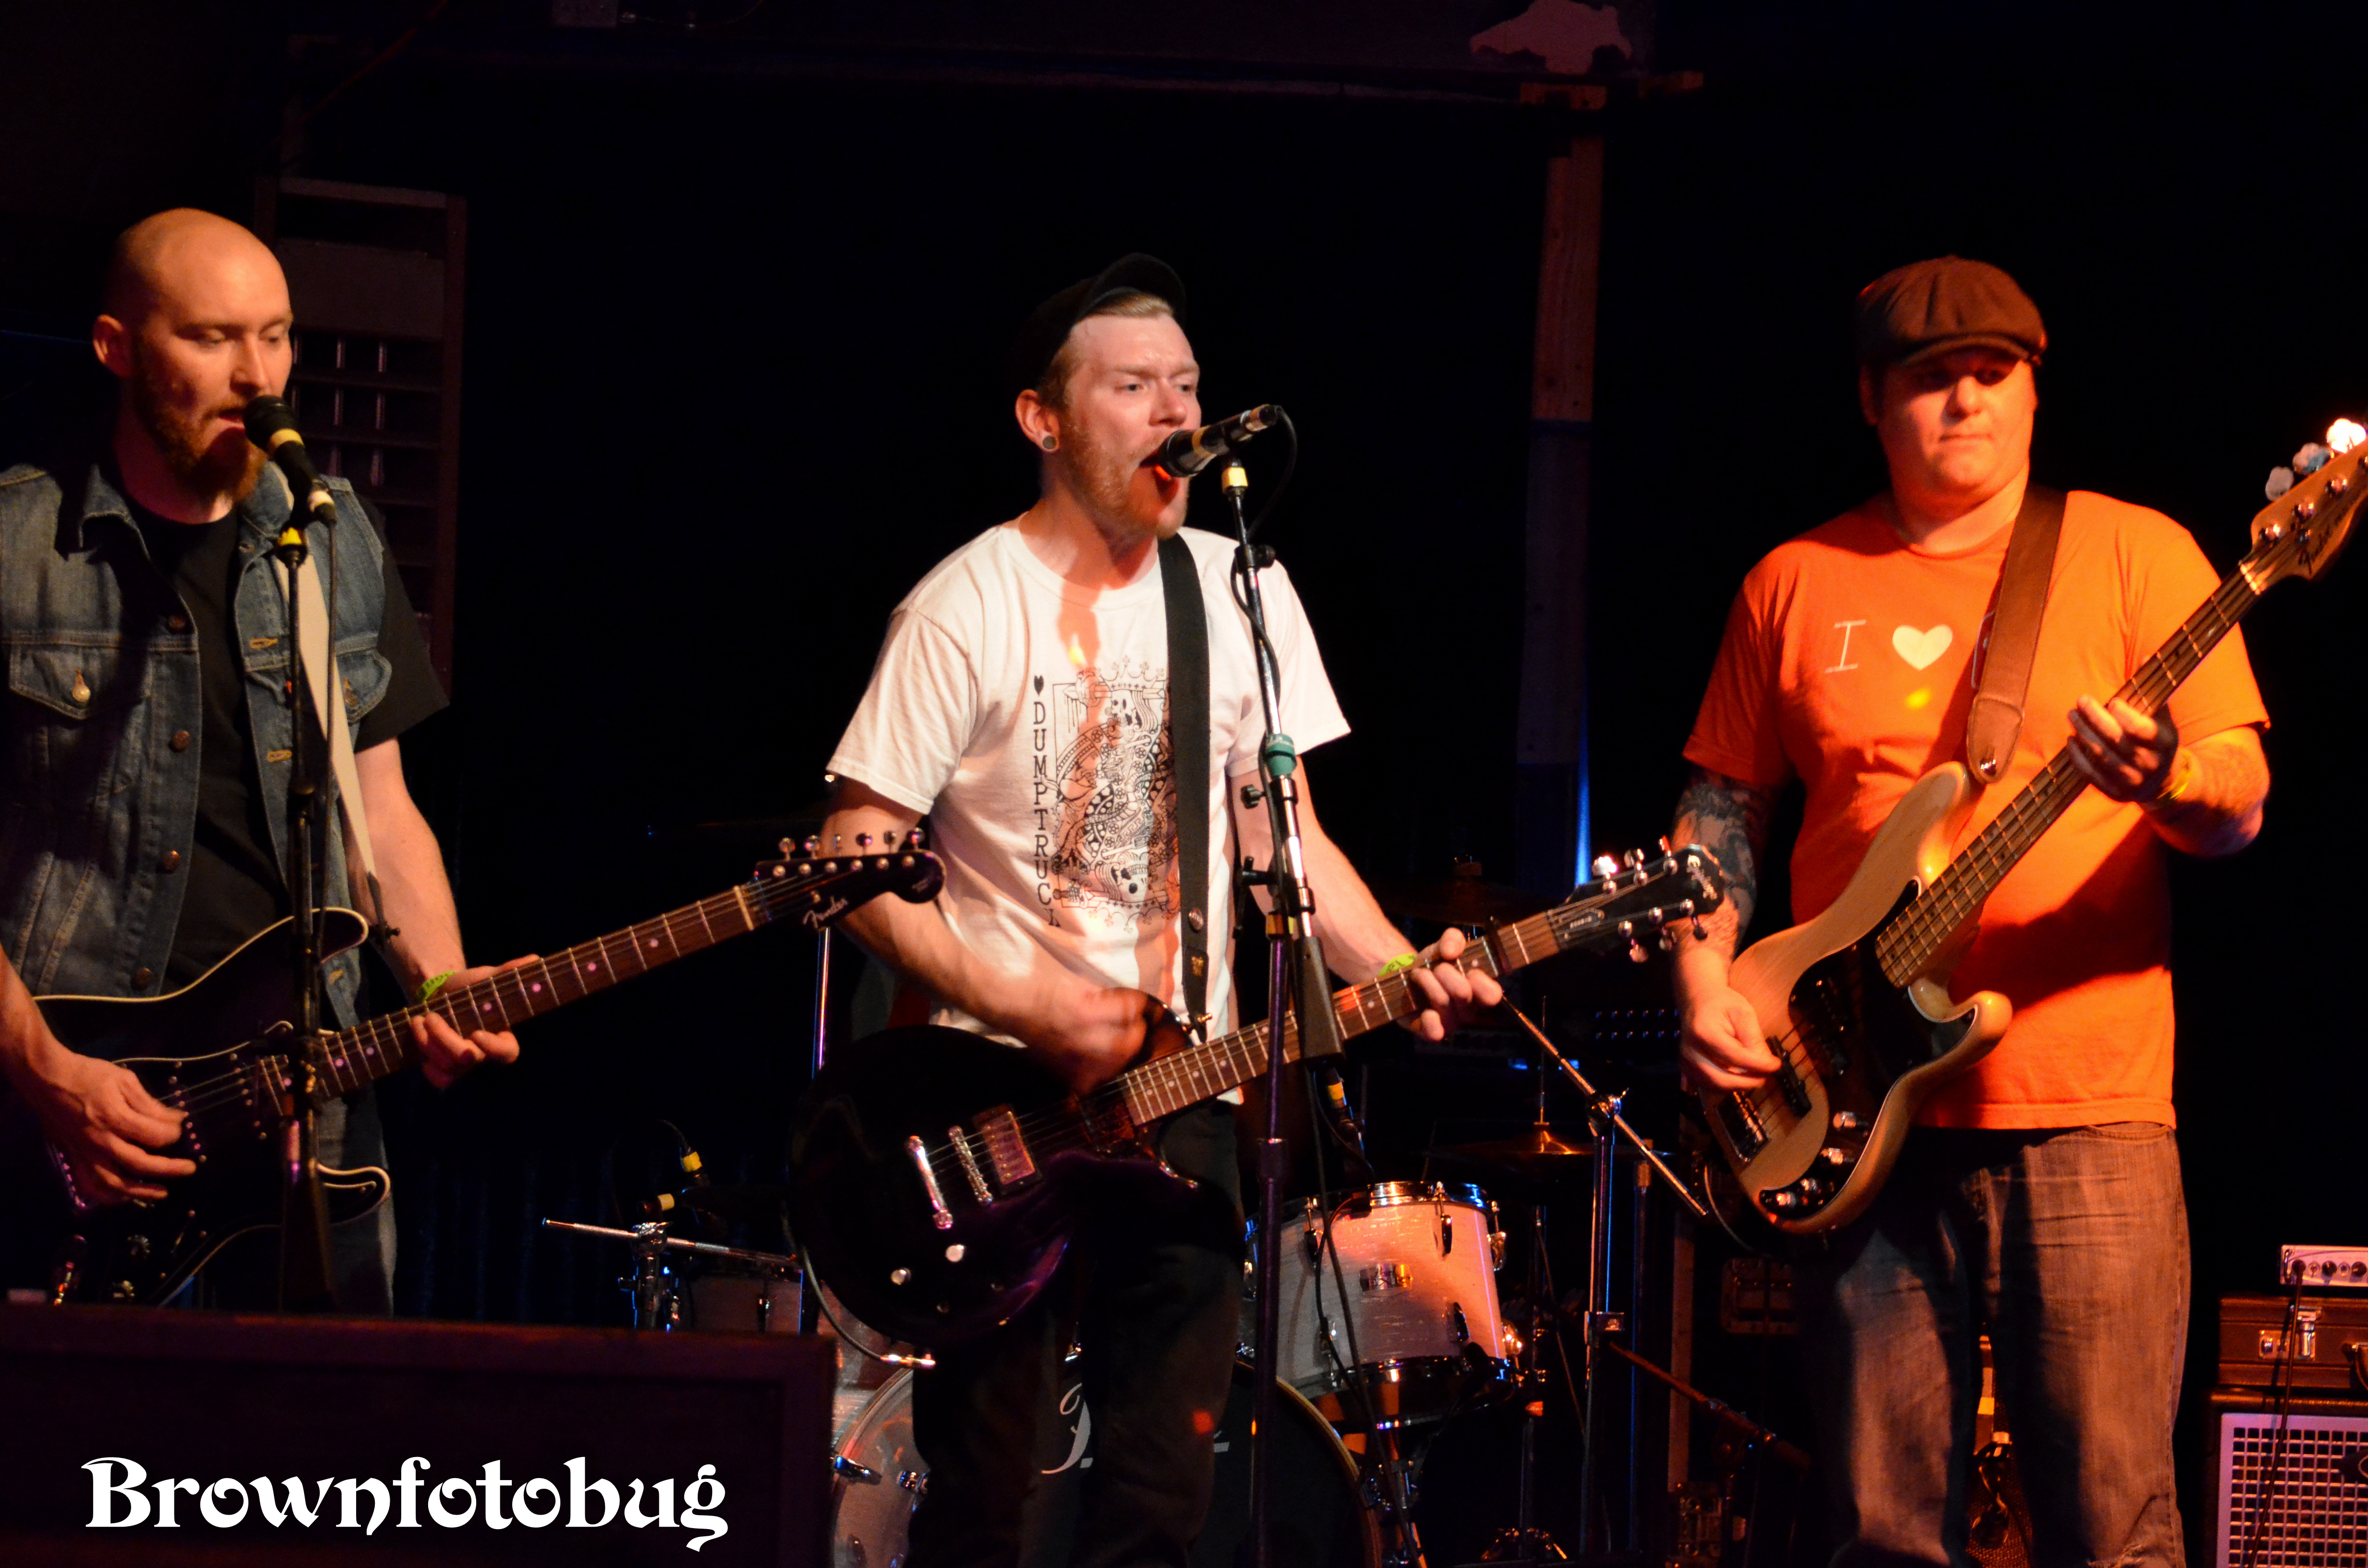 The Restless Sons Live at El Corazon (Photo by Arlene Brown)